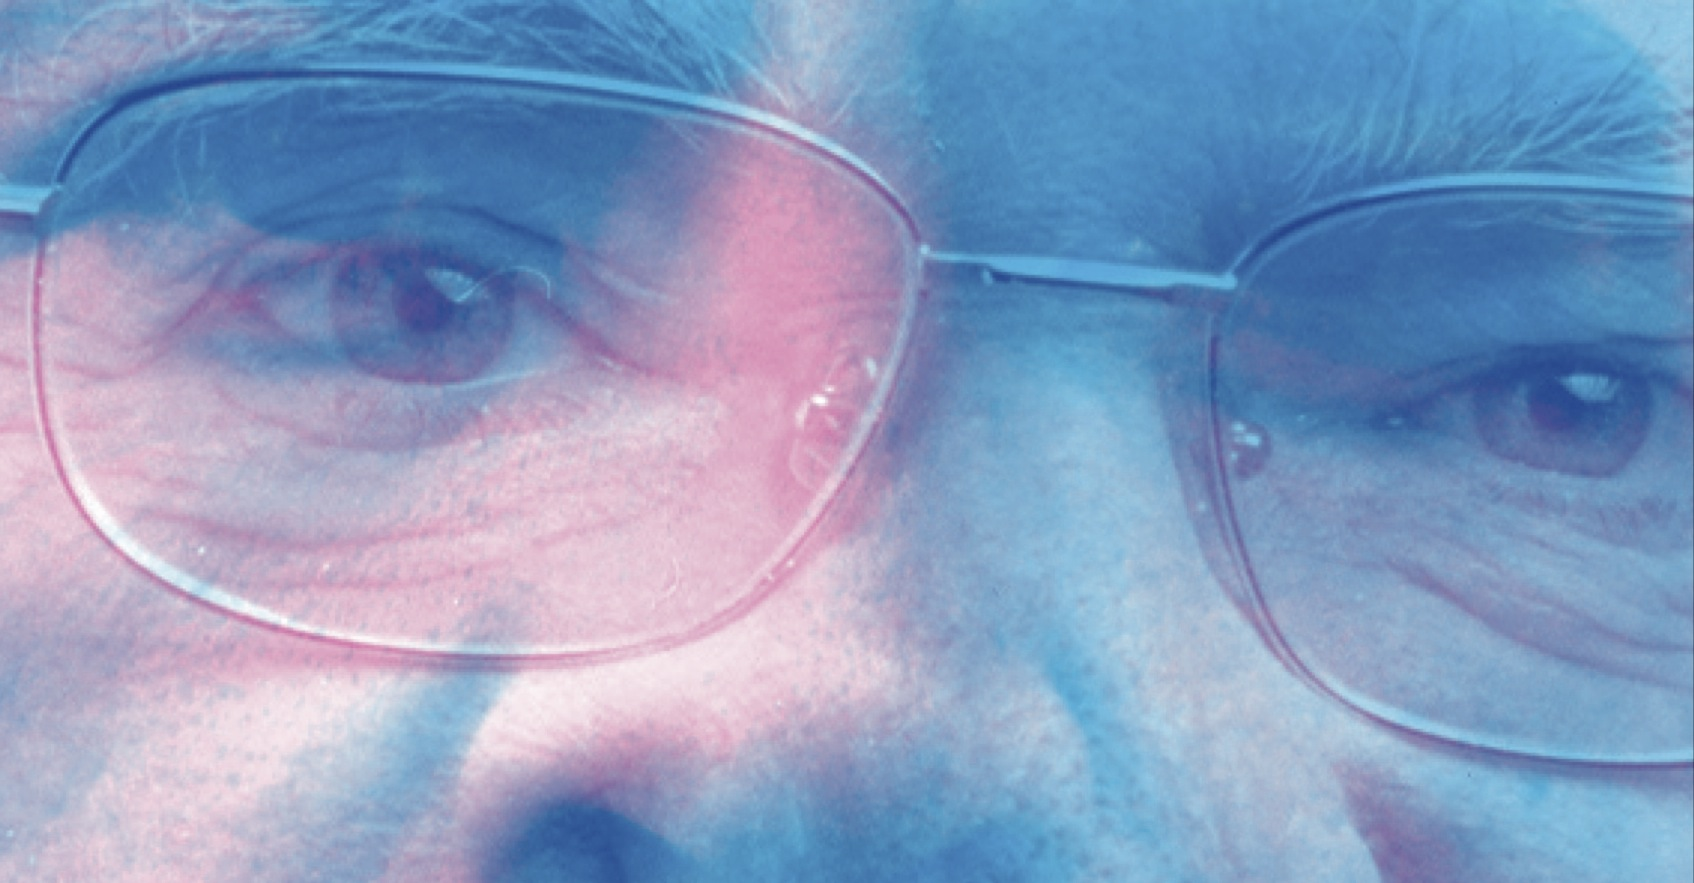 Close shot of man's eyes behind glasses